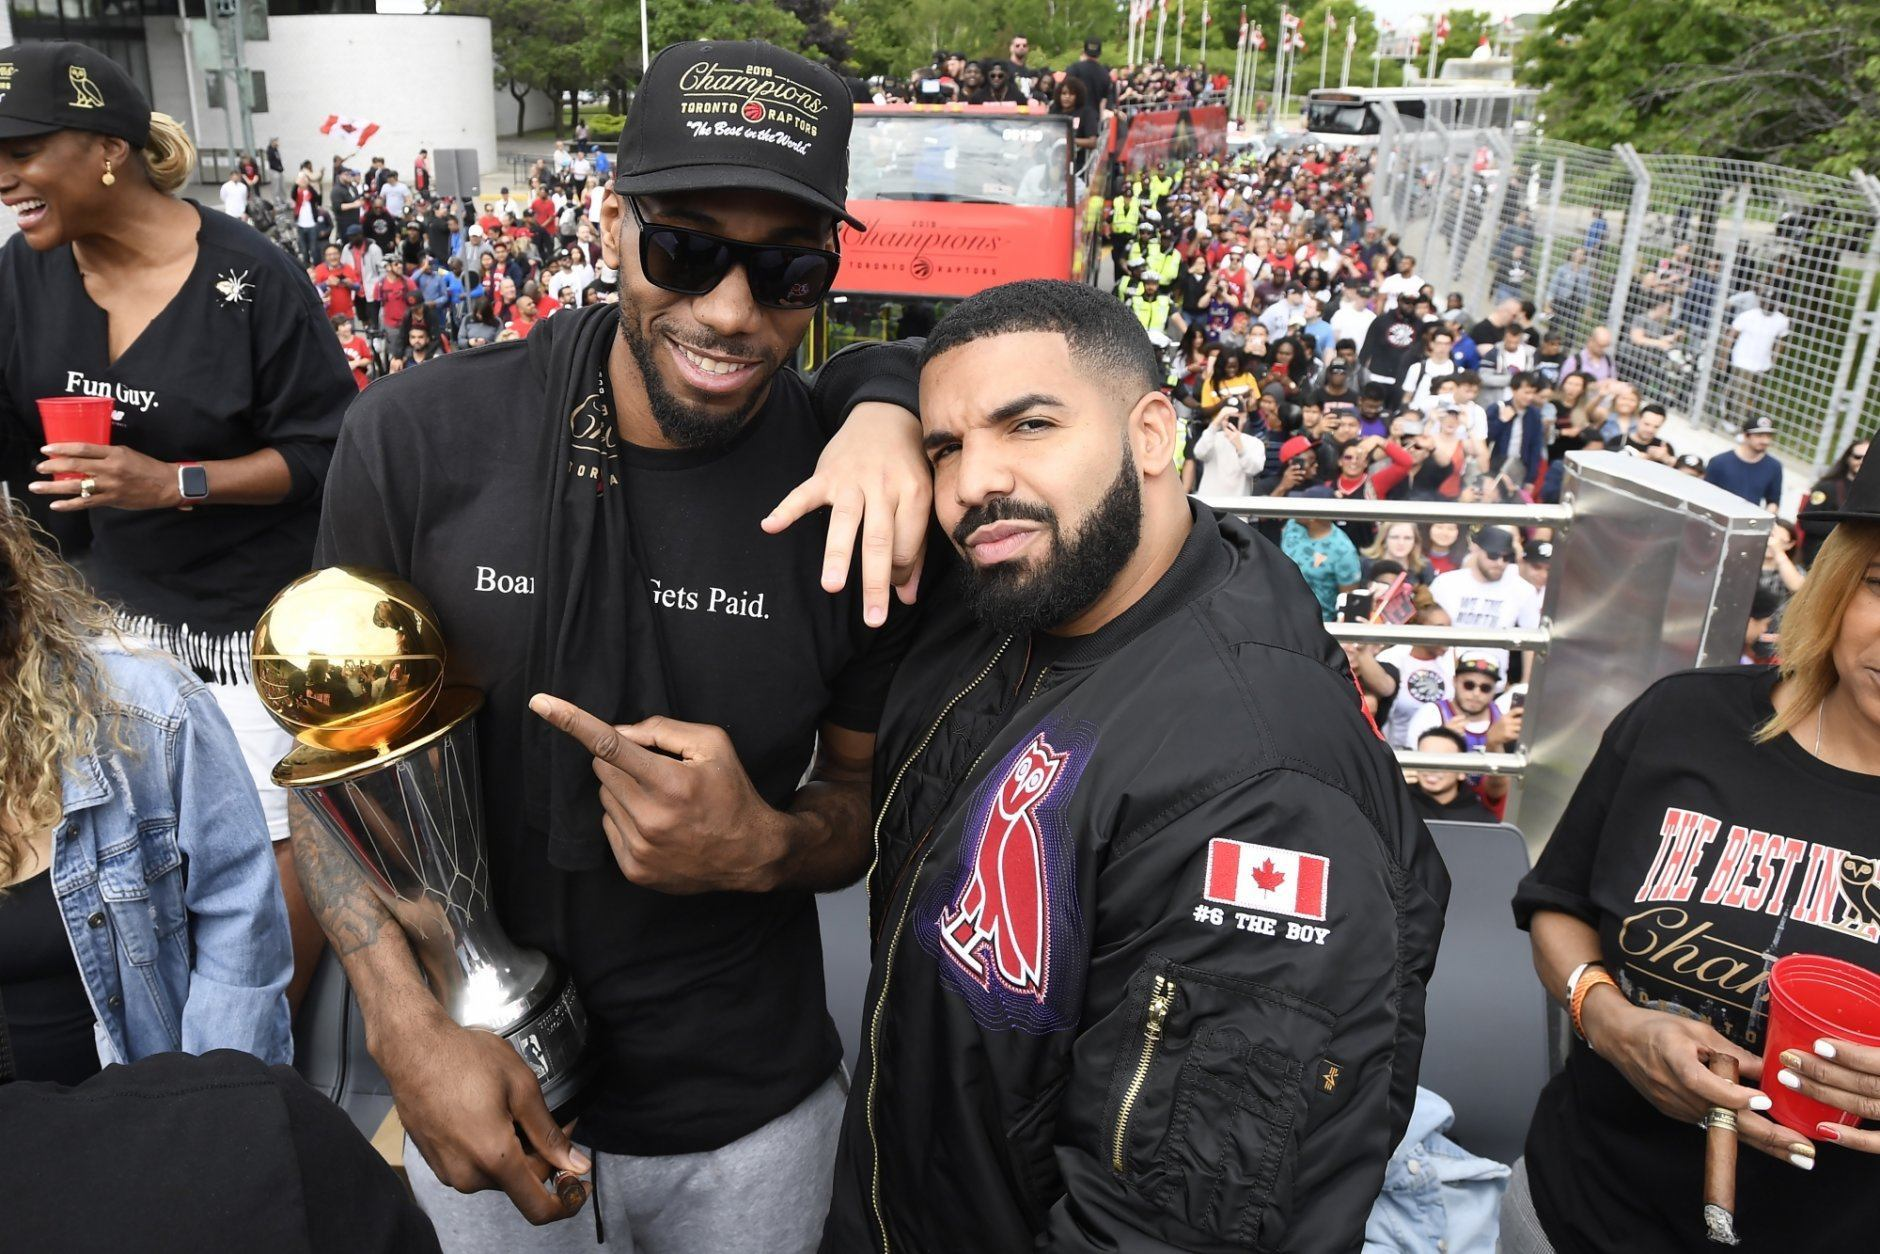 Toronto Raptors forward Kawhi Leonard points at his playoffs MVP trophy as he poses with performing artist Drake during the 2019 Toronto Raptors NBA basketball championship parade in Toronto, Monday, June 17, 2019. (Frank Gunn/The Canadian Press via AP)